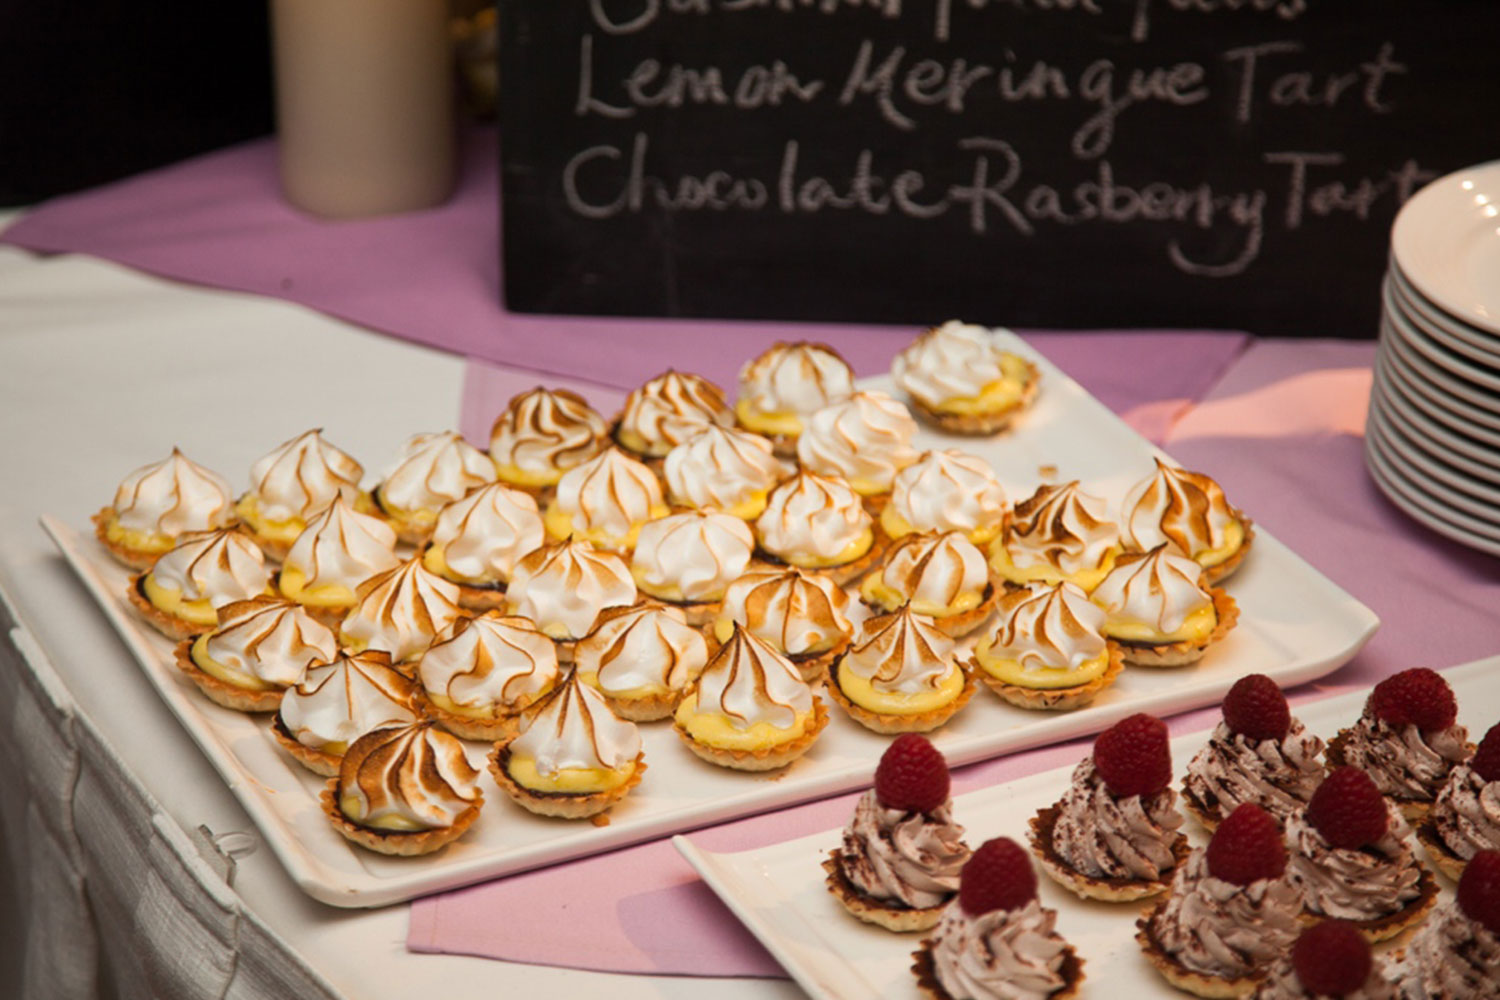 toast-pastries-desserts-delicious-corporate-wedding-event-catering.jpg